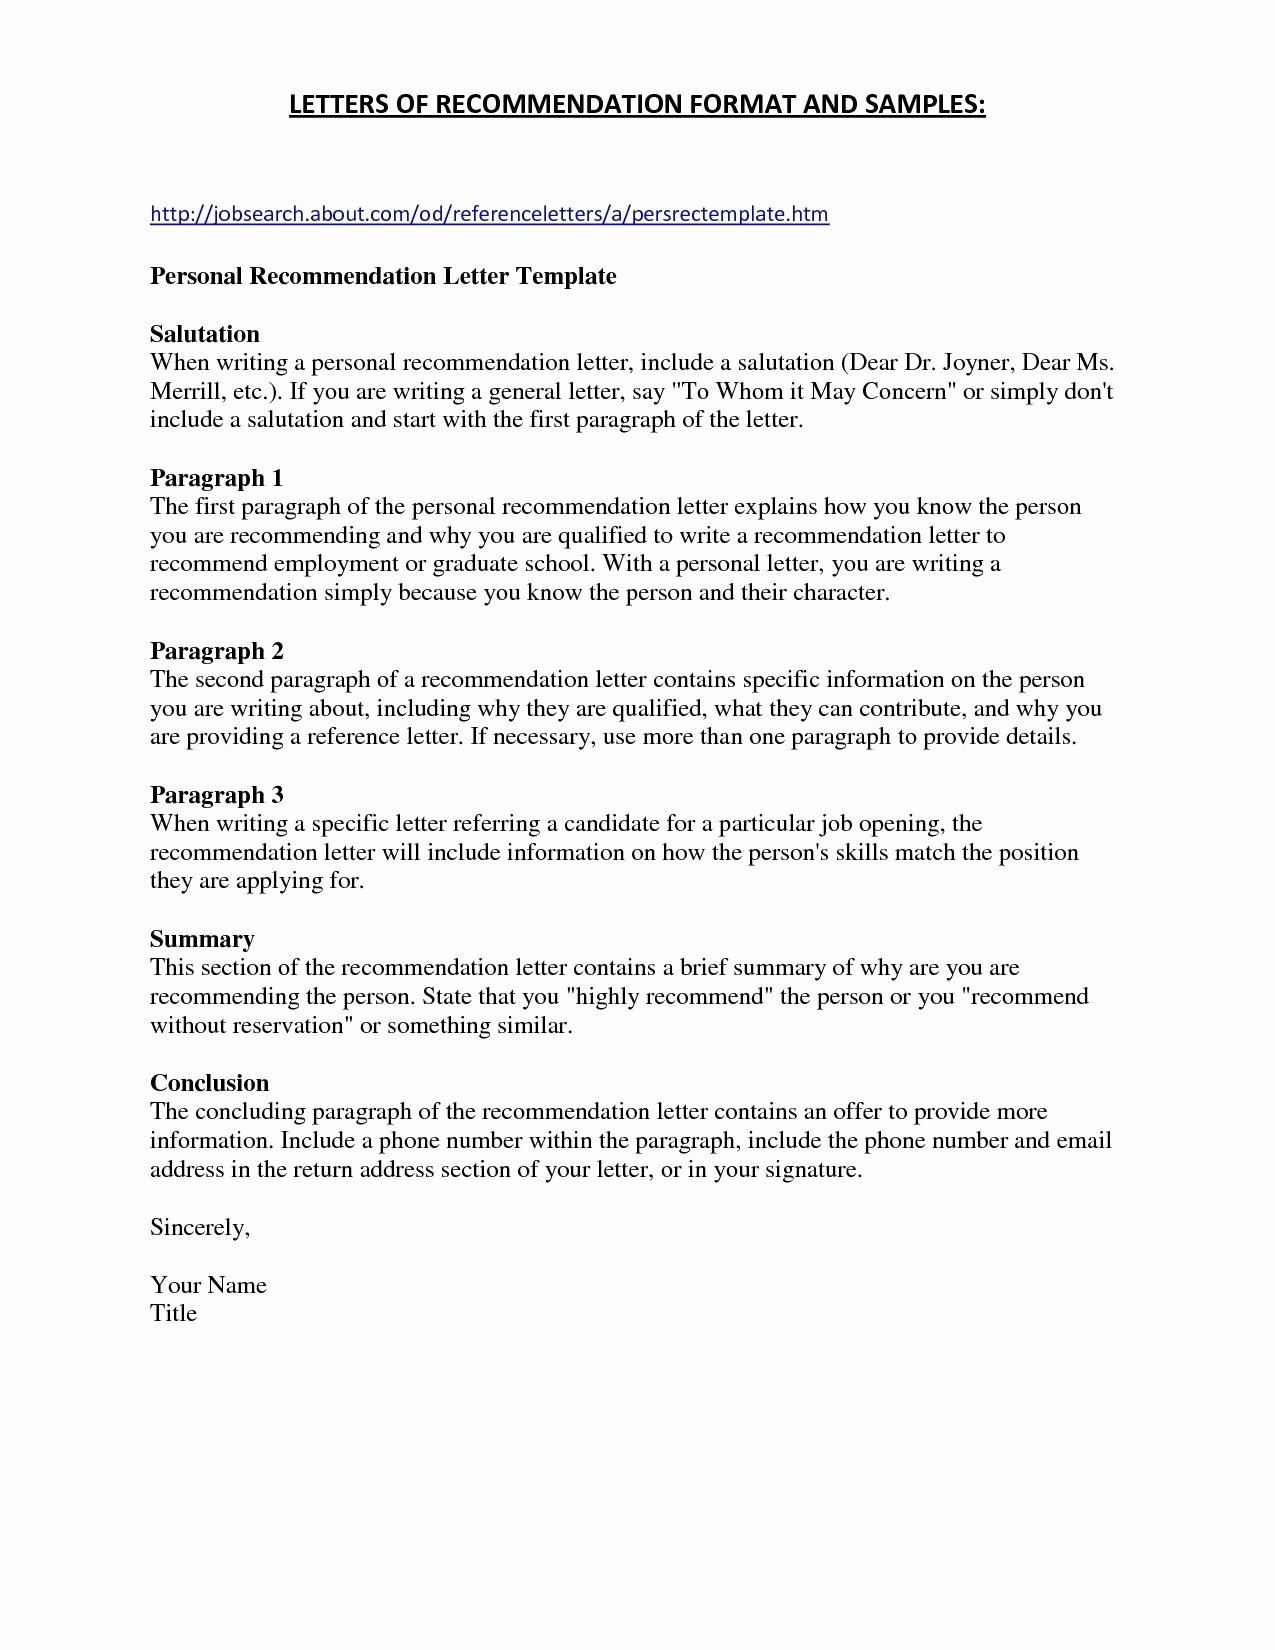 Cash Out Refinance Letter Sample New Cash Out Refinance Letter Template Collection